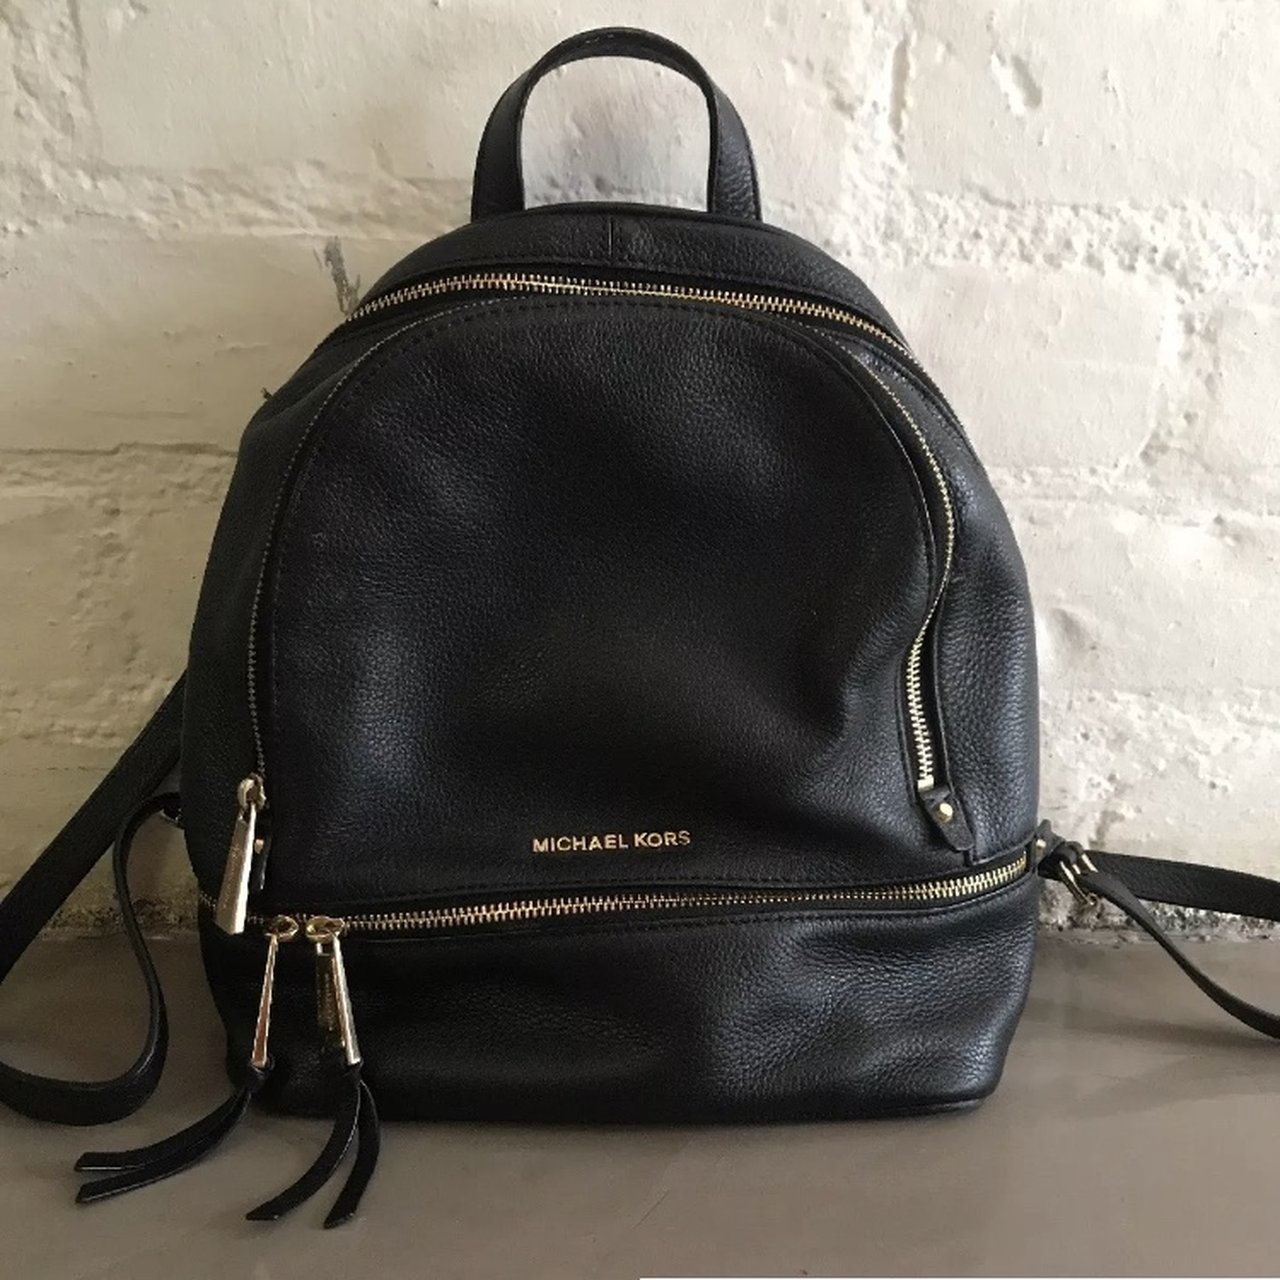 3e30b2e7fca6 @sgregg20. 11 months ago. Los Angeles, United States. Michael Kors Rhea Zip Small  Leather Backpack ...